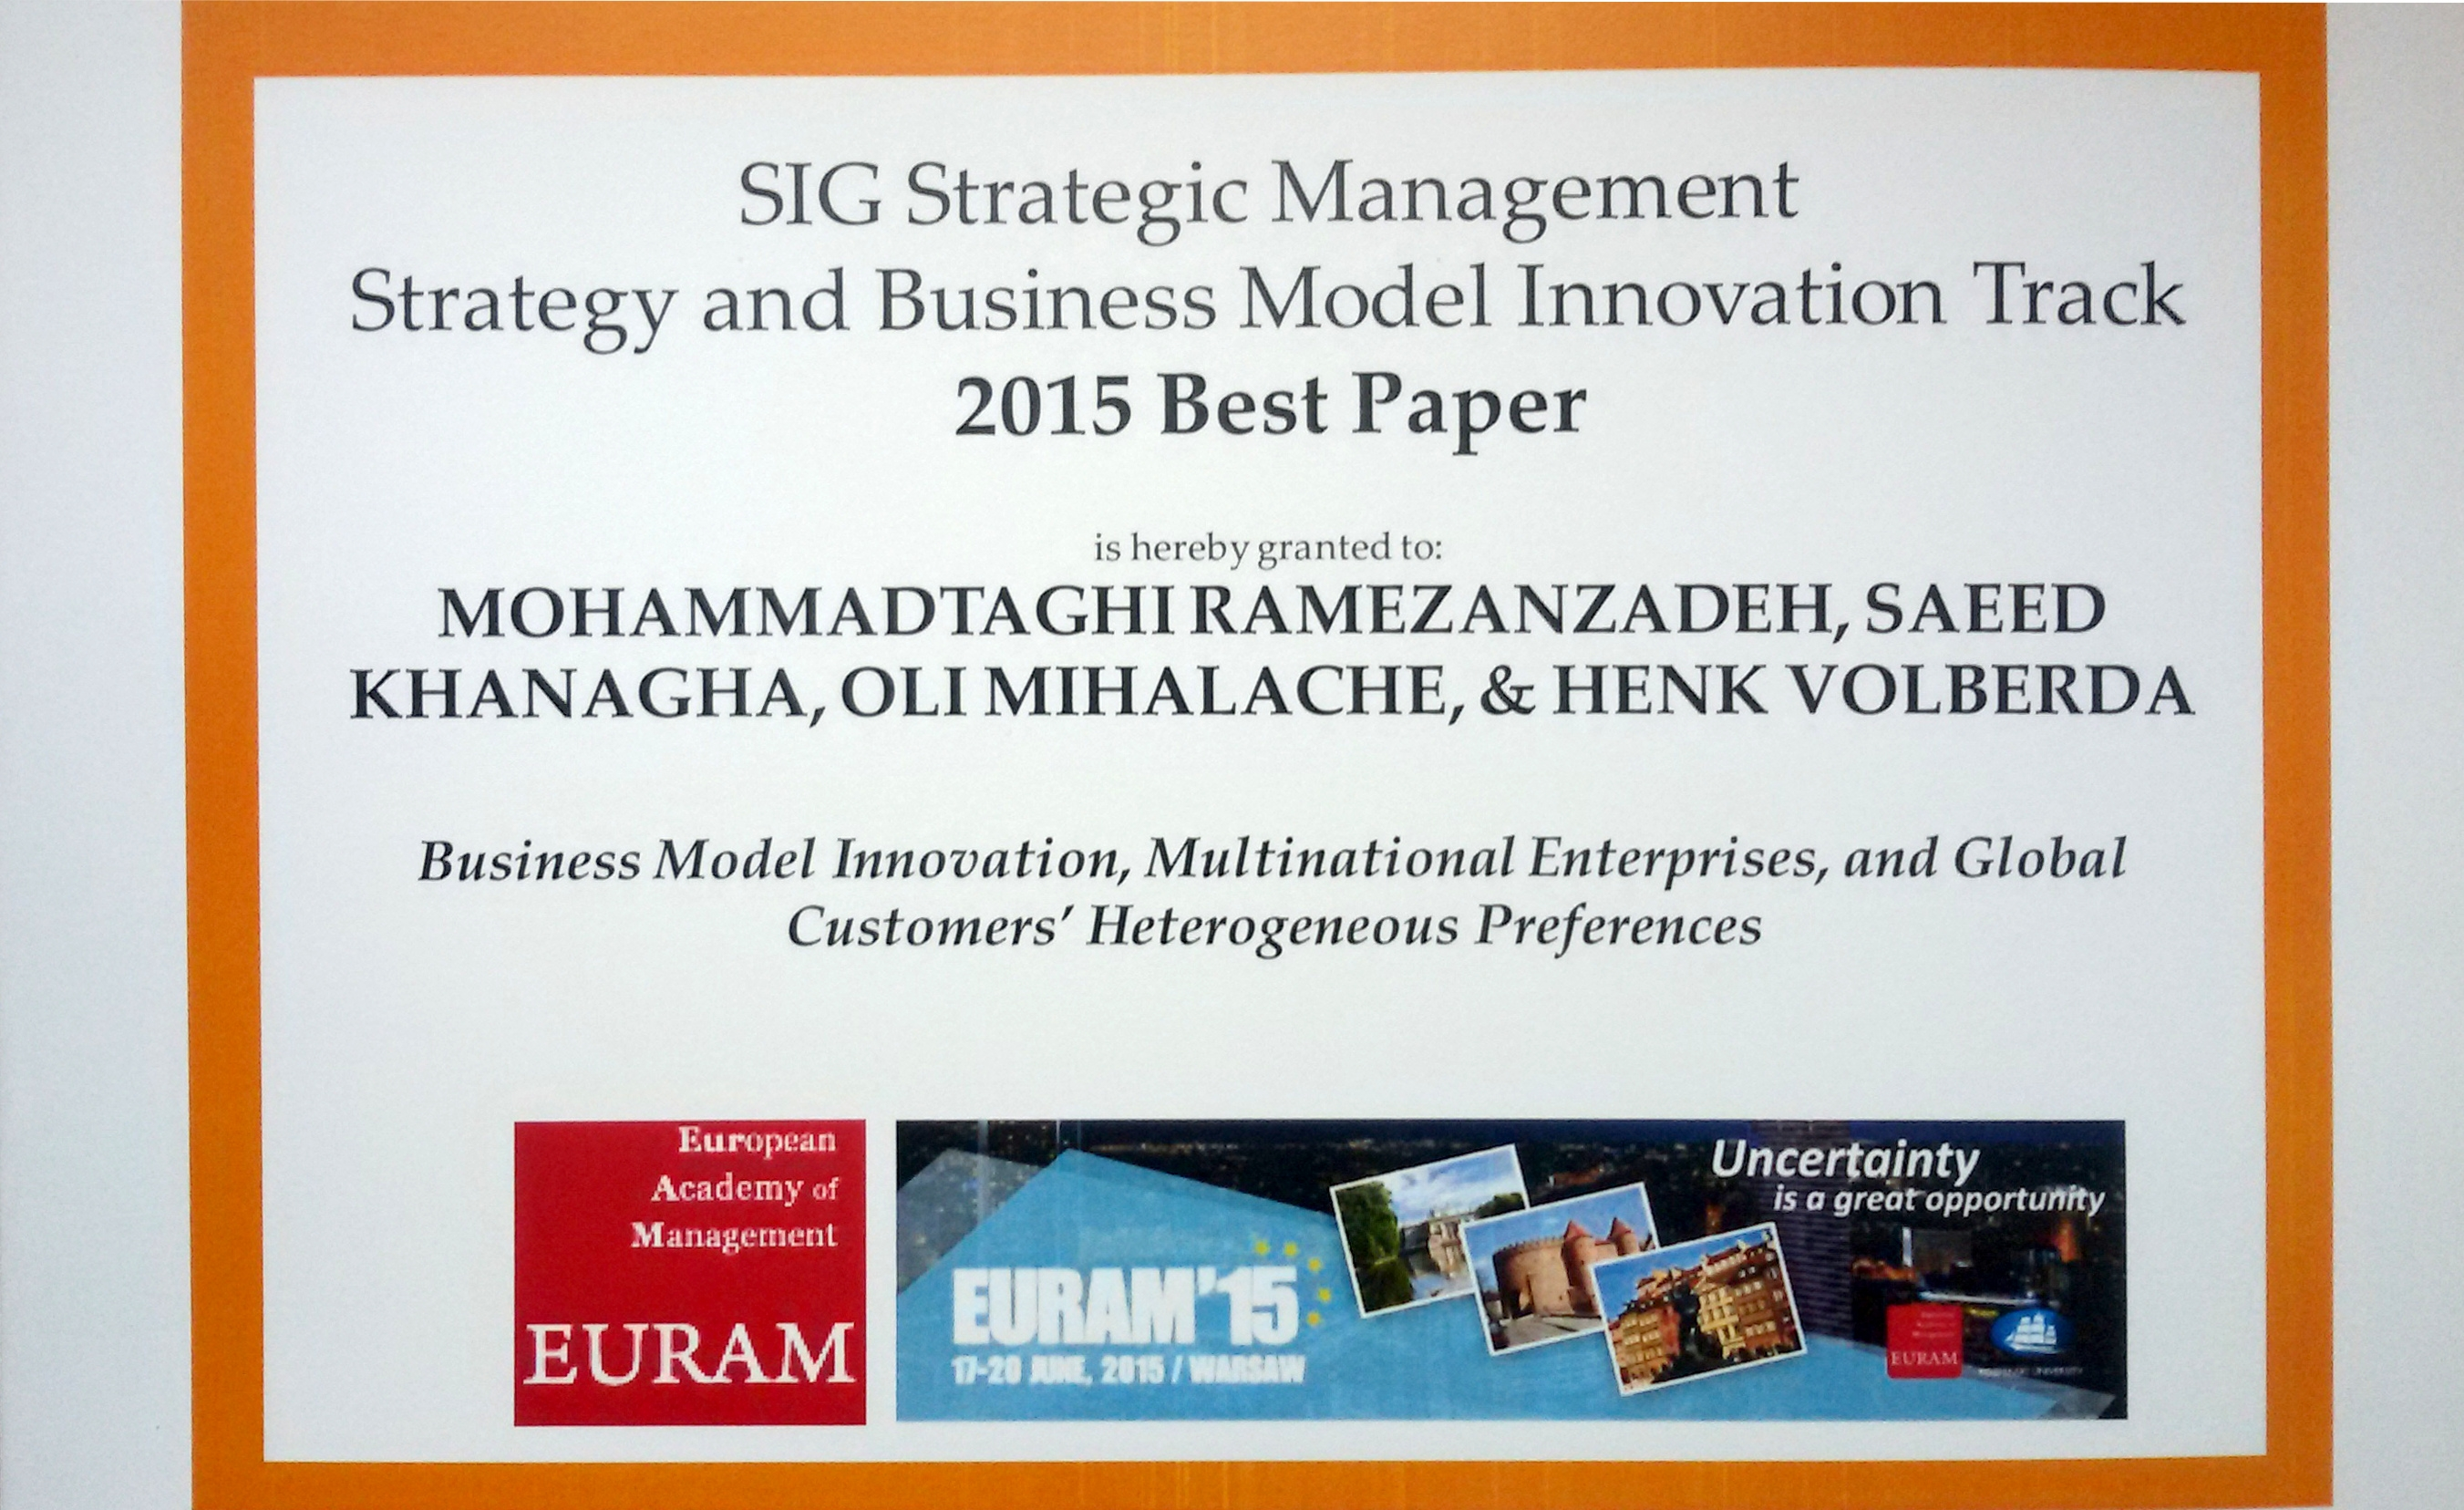 RSM business model innovation research wins award in Poland